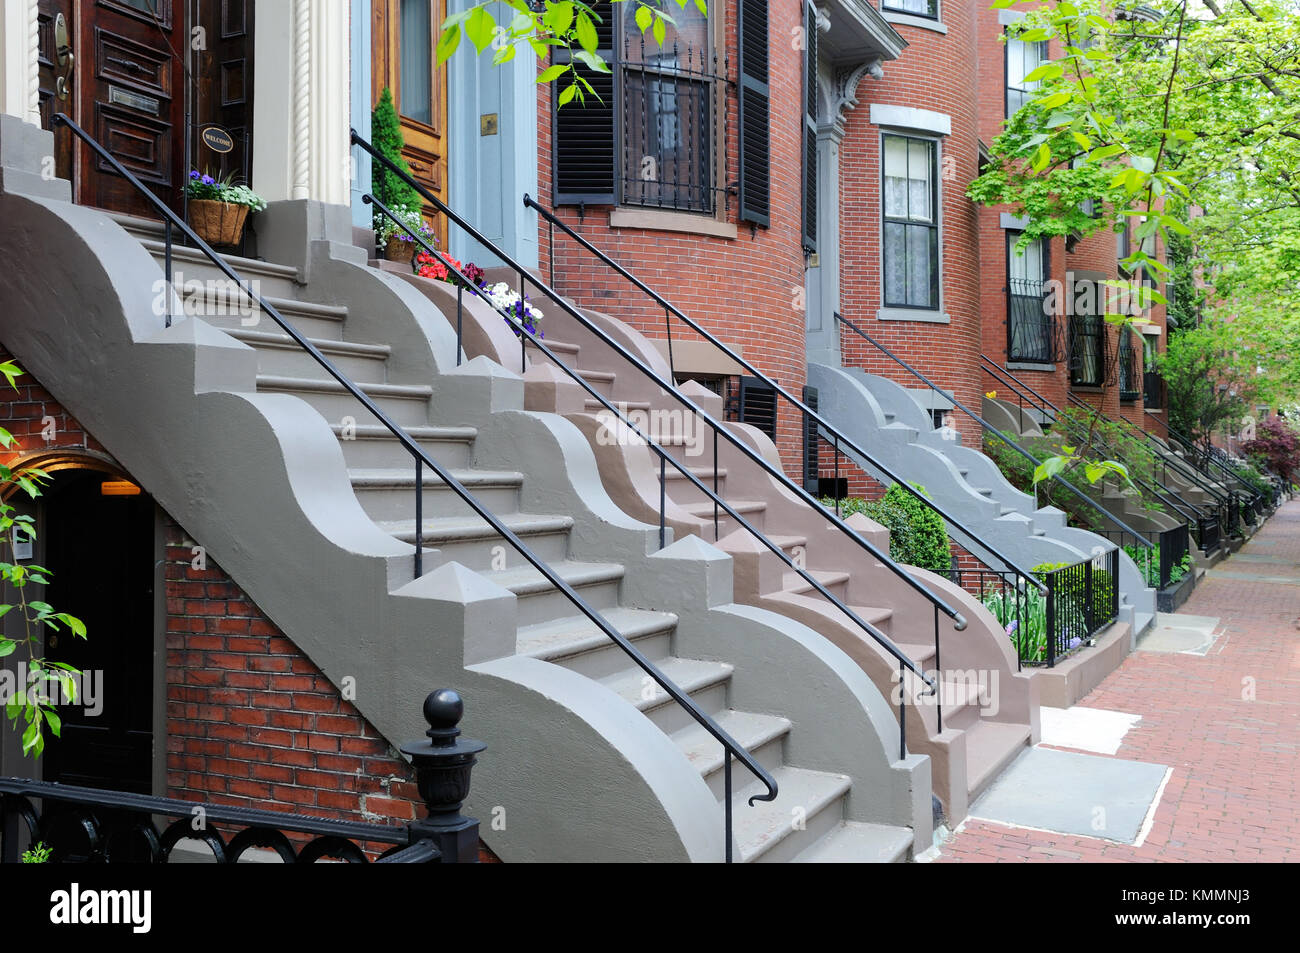 South End, Boston Victorian row houses. Brick aparment buildings and sidewalks, colorful steps with wavy stone trim, Stock Photo